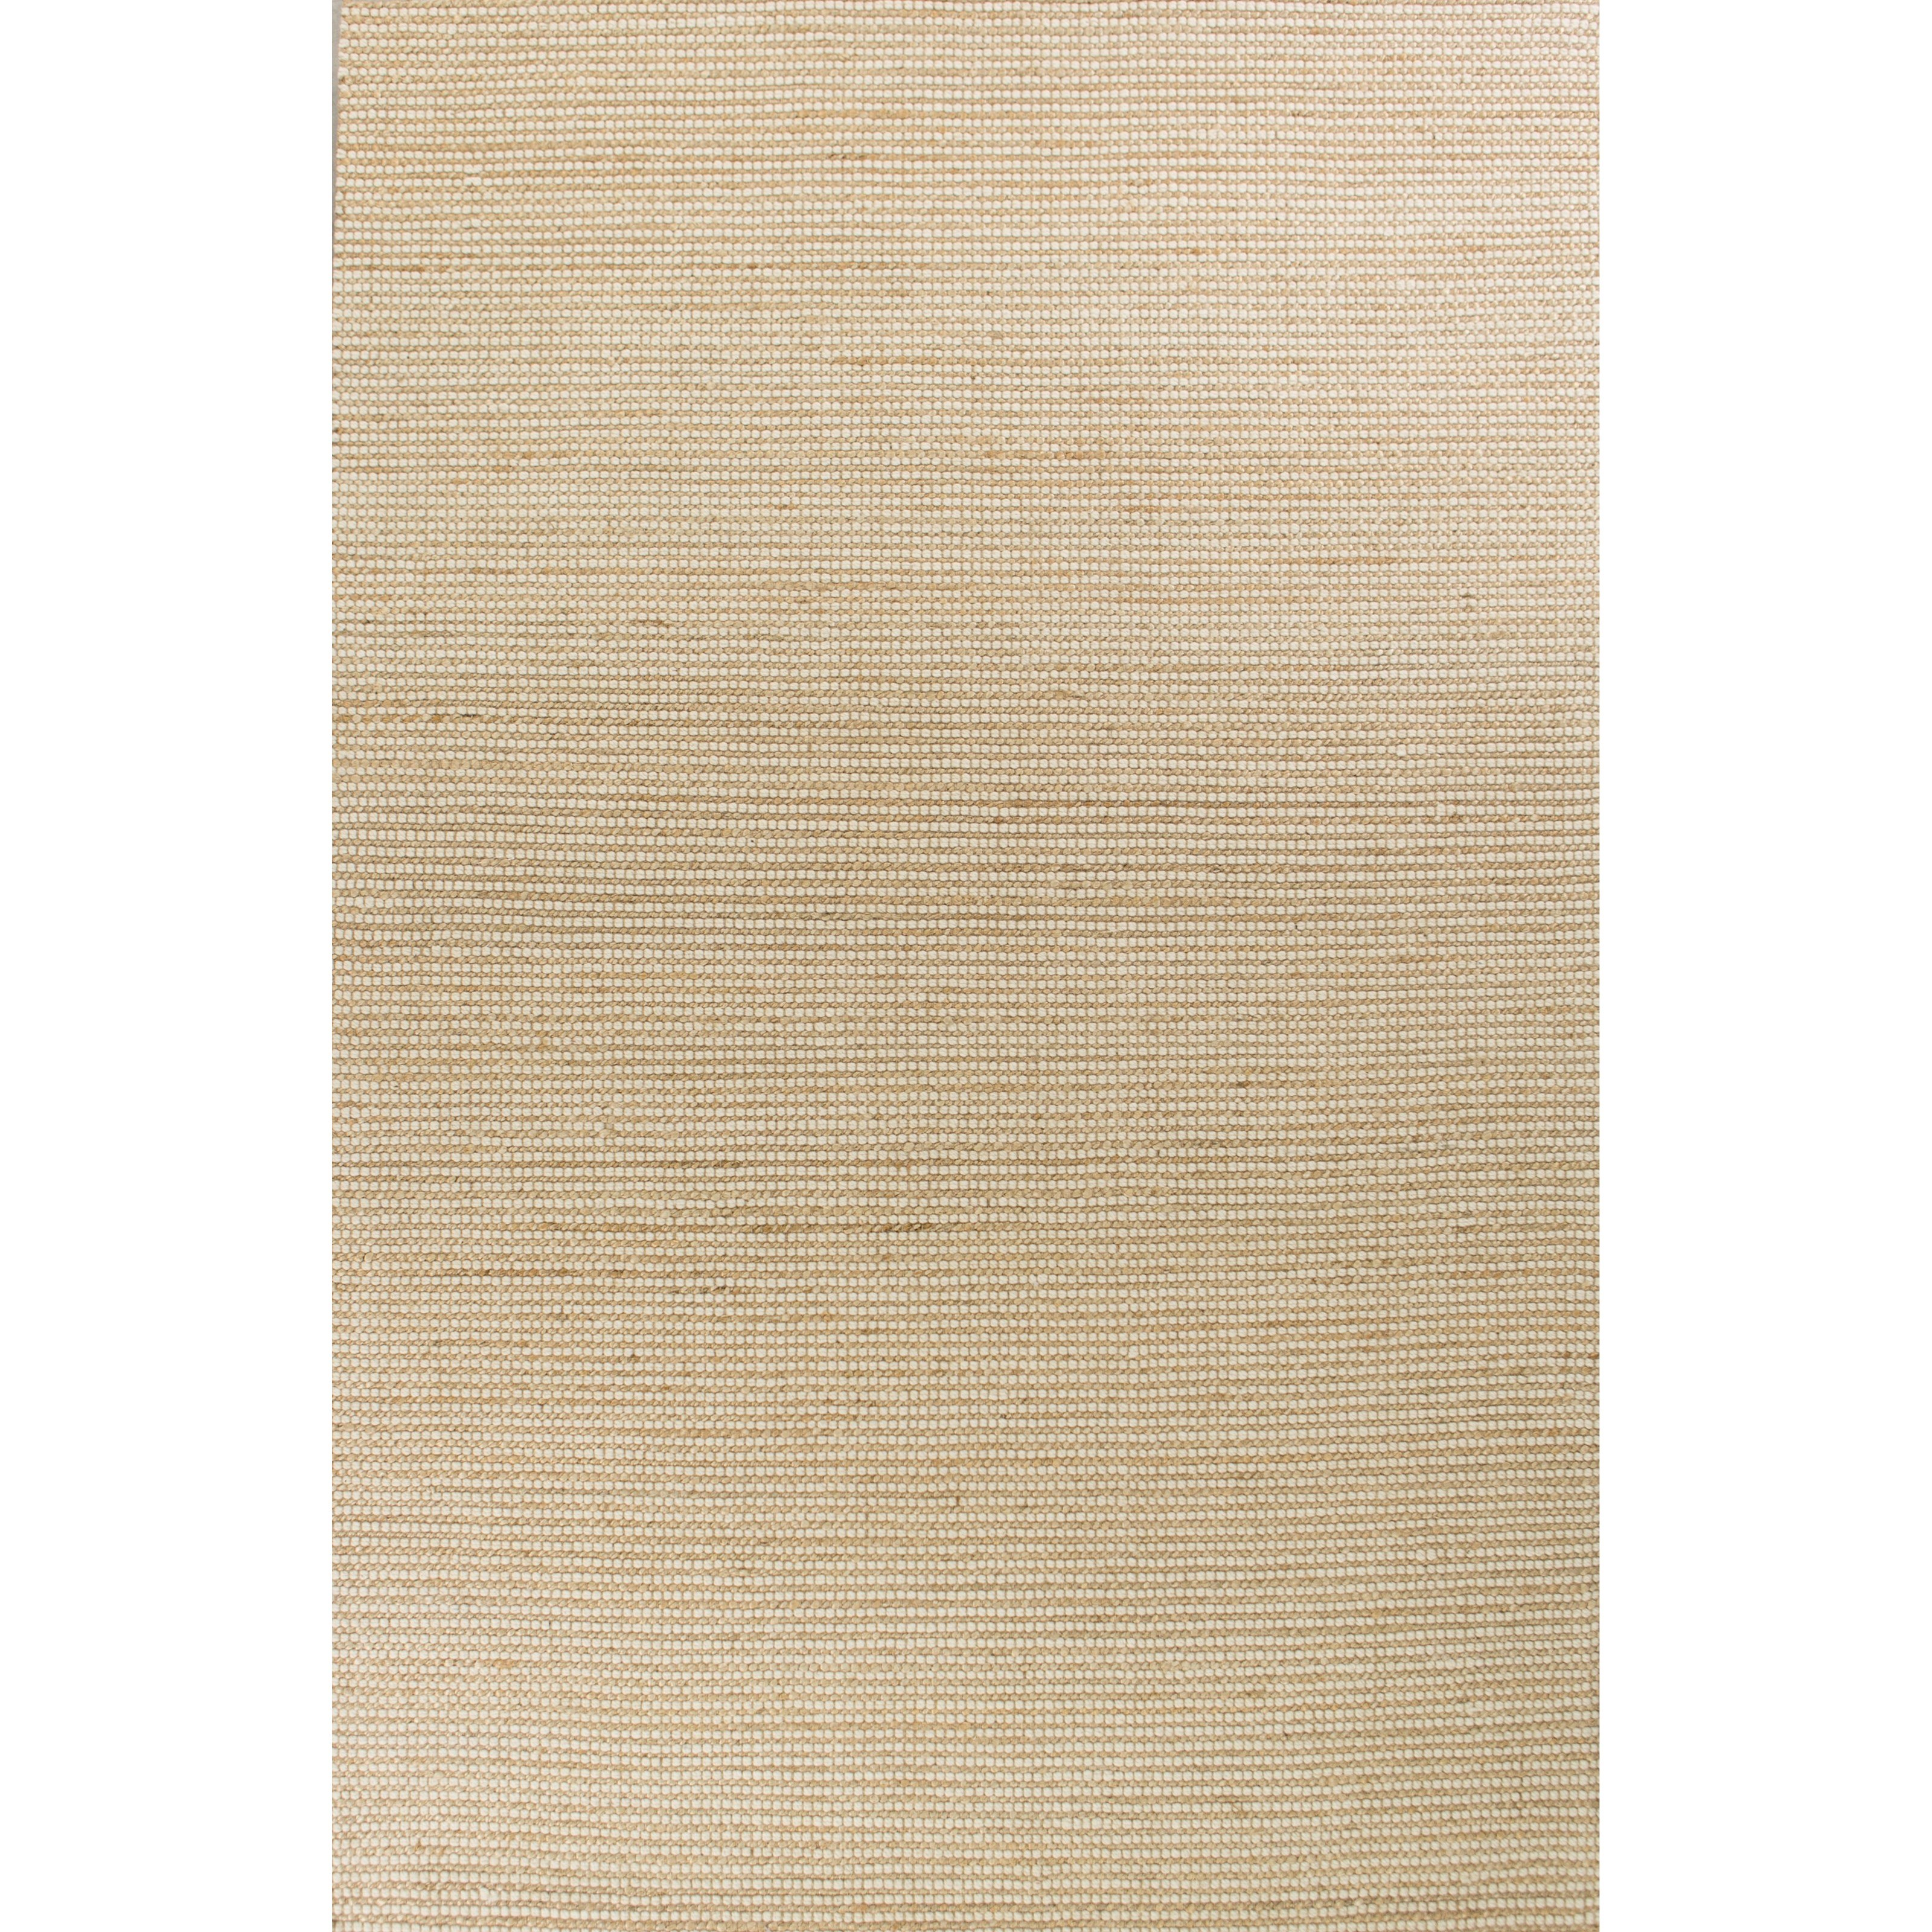 Mason 7' X 5' Area Rug by Kas at Walker's Furniture